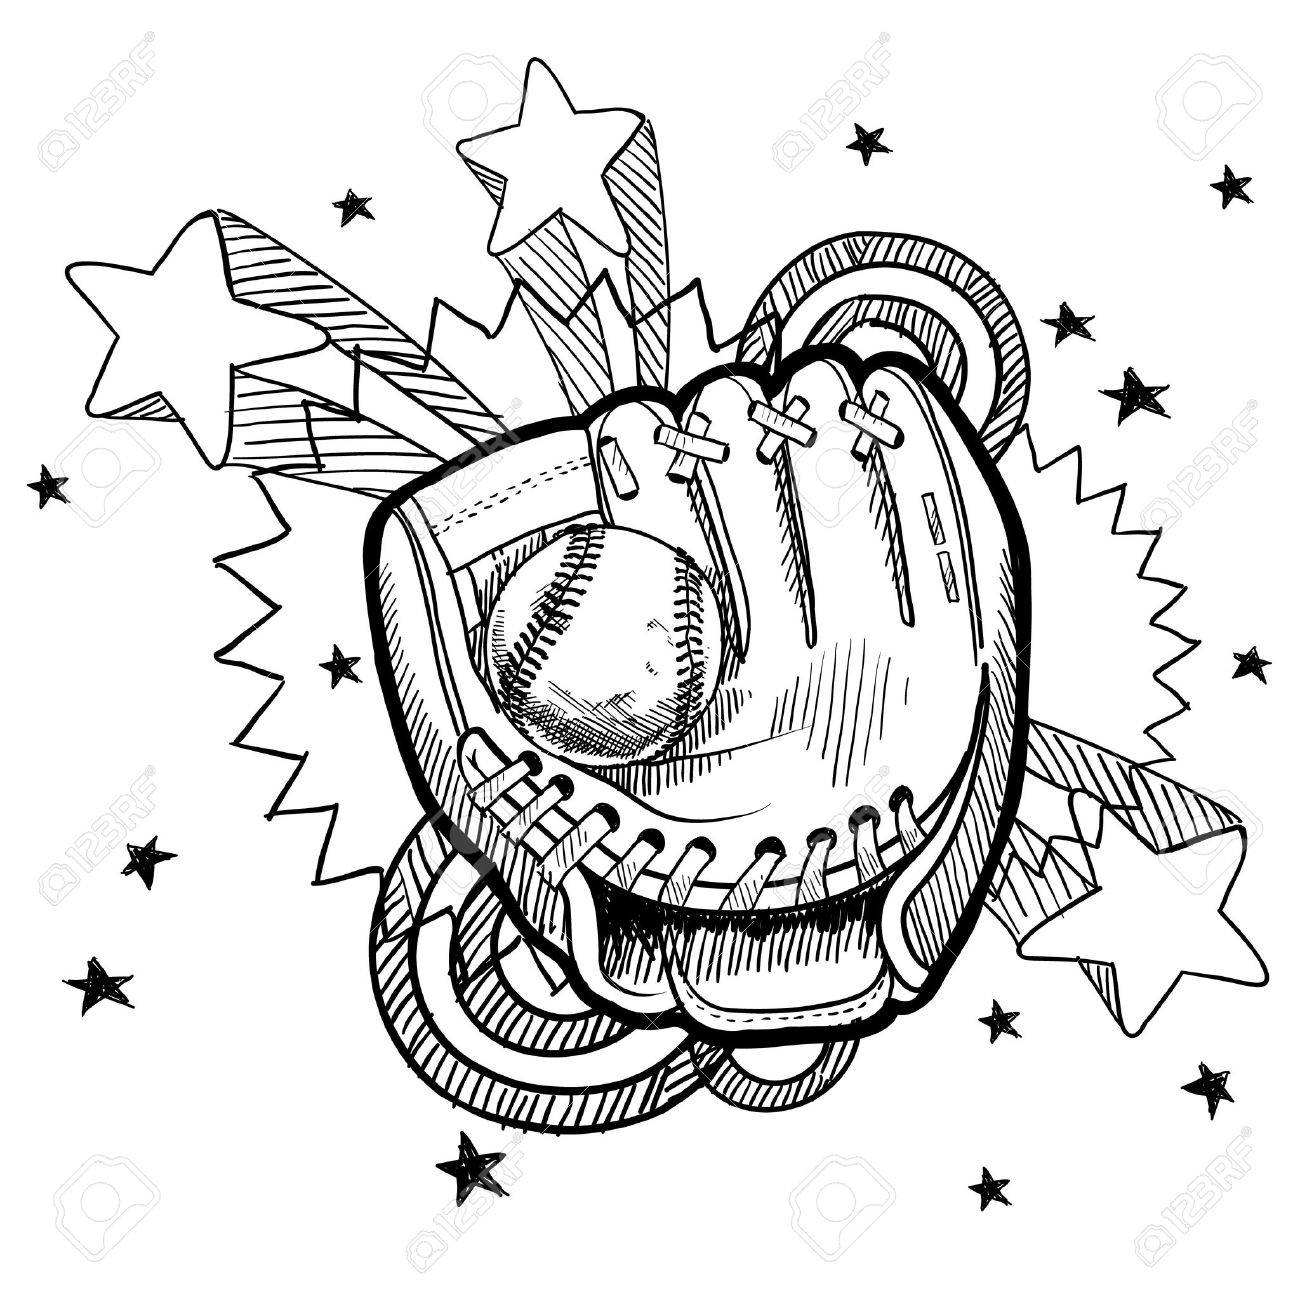 Doodle style baseball glove illustration with retro 1970s pop background Stock Vector - 13258713